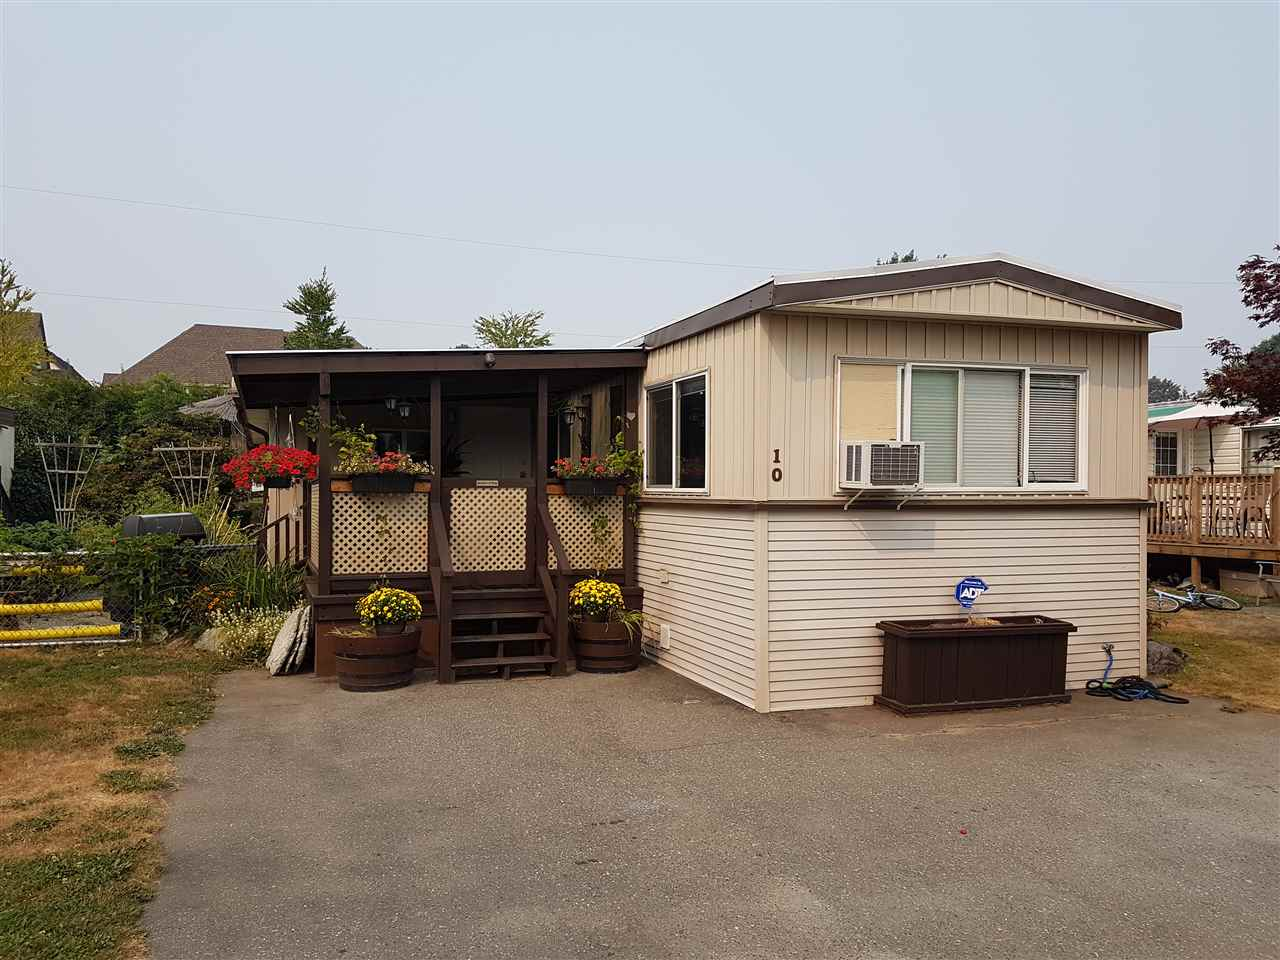 """Come see this well-maintained 3-bedroom, 2-bathroom home with a beautiful yard and rock garden. Open kitchen, large living room, 10'x12' sundeck, and 220V powered shop. Updated electrical and new CSA label. This home could be ideal for a growing young family, or downsize in comfort in this central Sardis location. Westwood Estates is close to shopping, restaurants, transit, schools, Cheam Leisure Centre, and Garrison Crossing. No age restriction, and one small dog (up to 15"""") or cat allowed. Park approval required with references and criminal record check."""